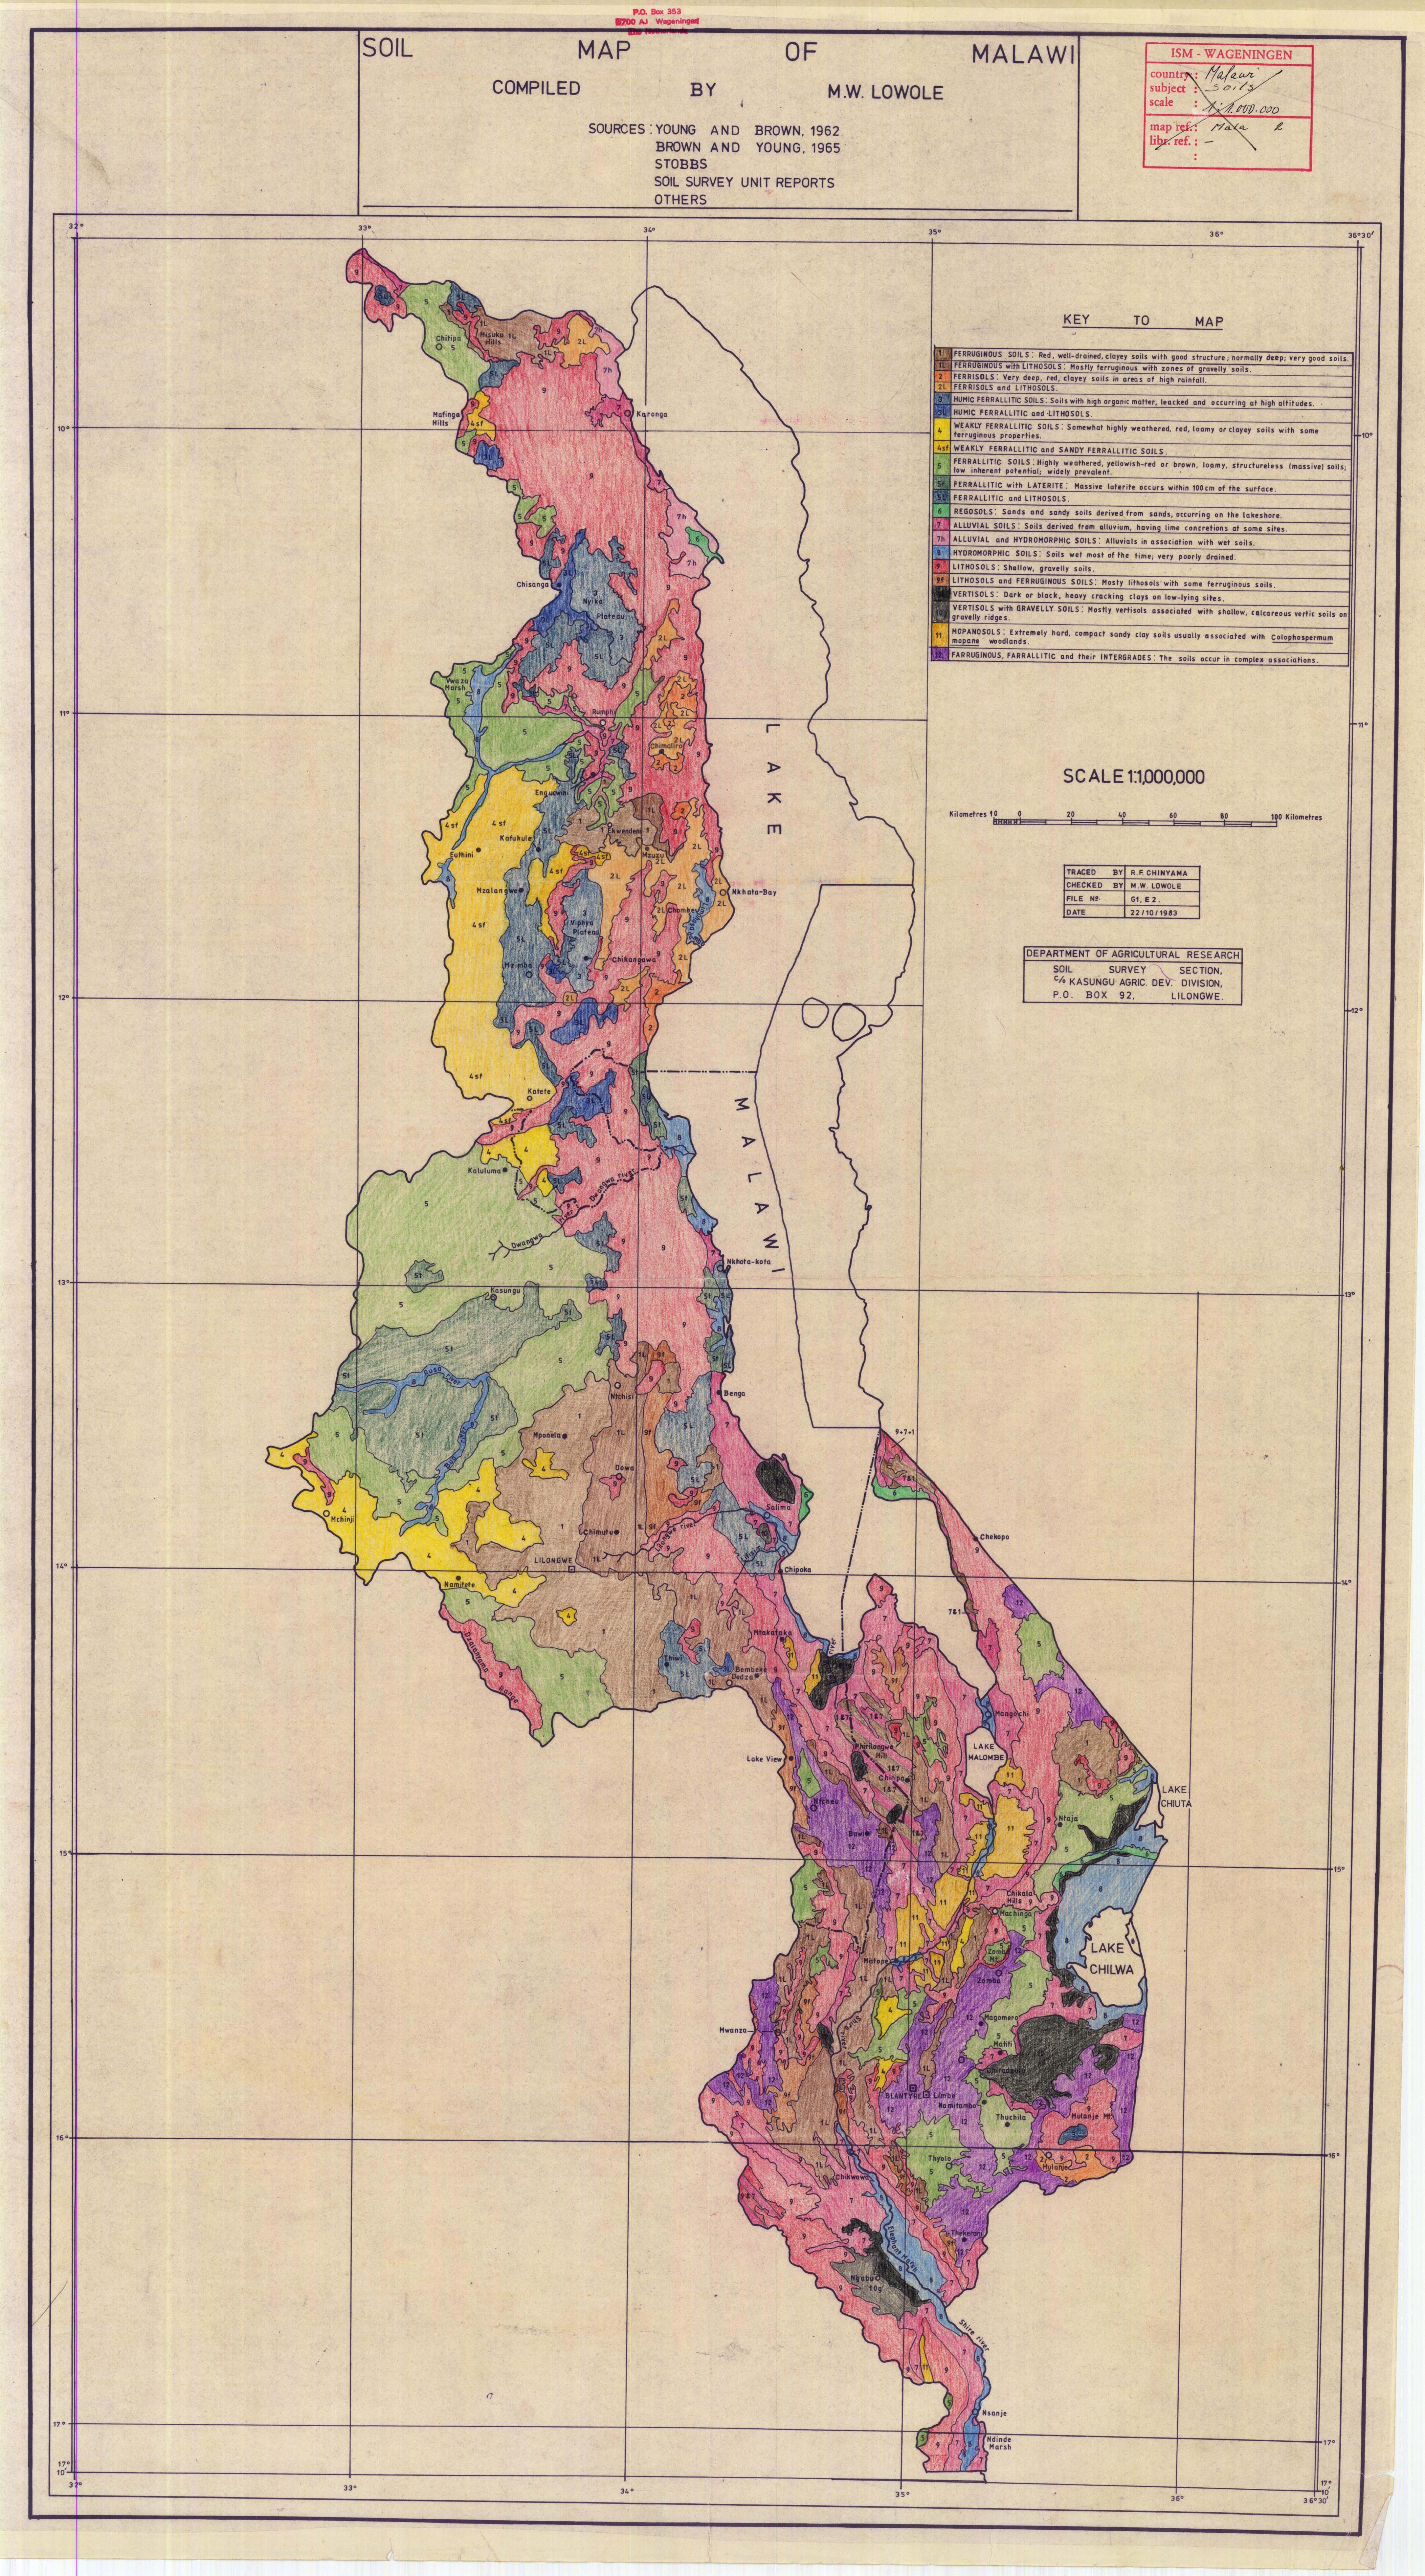 Malawi On Africa Map.Soil Map Of Malawi Esdac European Commission